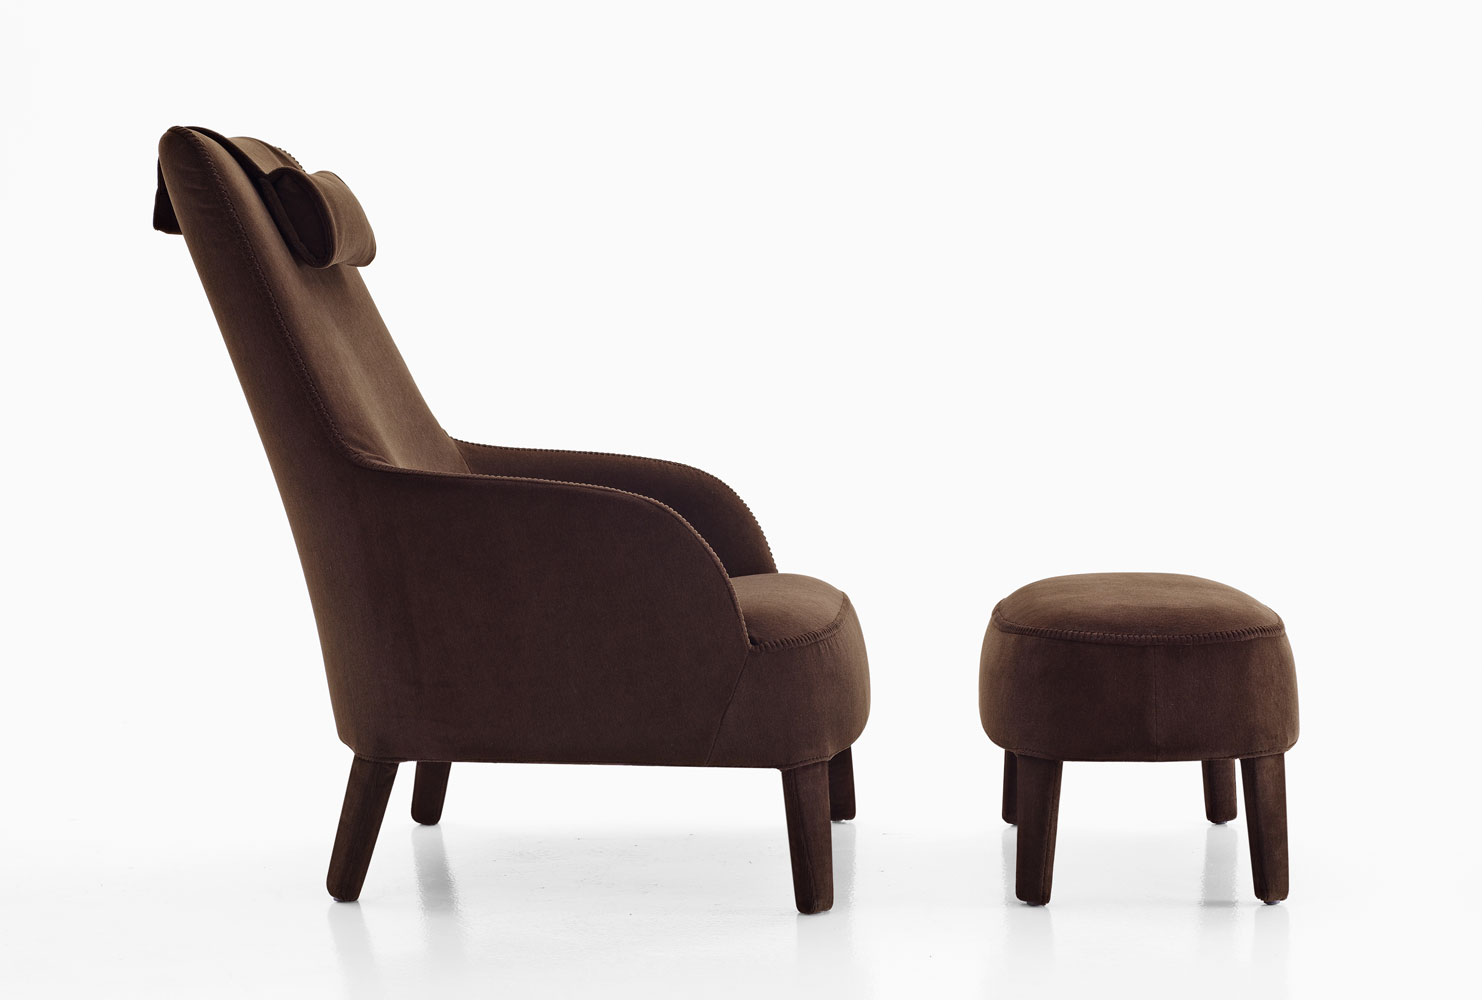 maxalto b b italia febo armchair buy from campbell watson uk. Black Bedroom Furniture Sets. Home Design Ideas